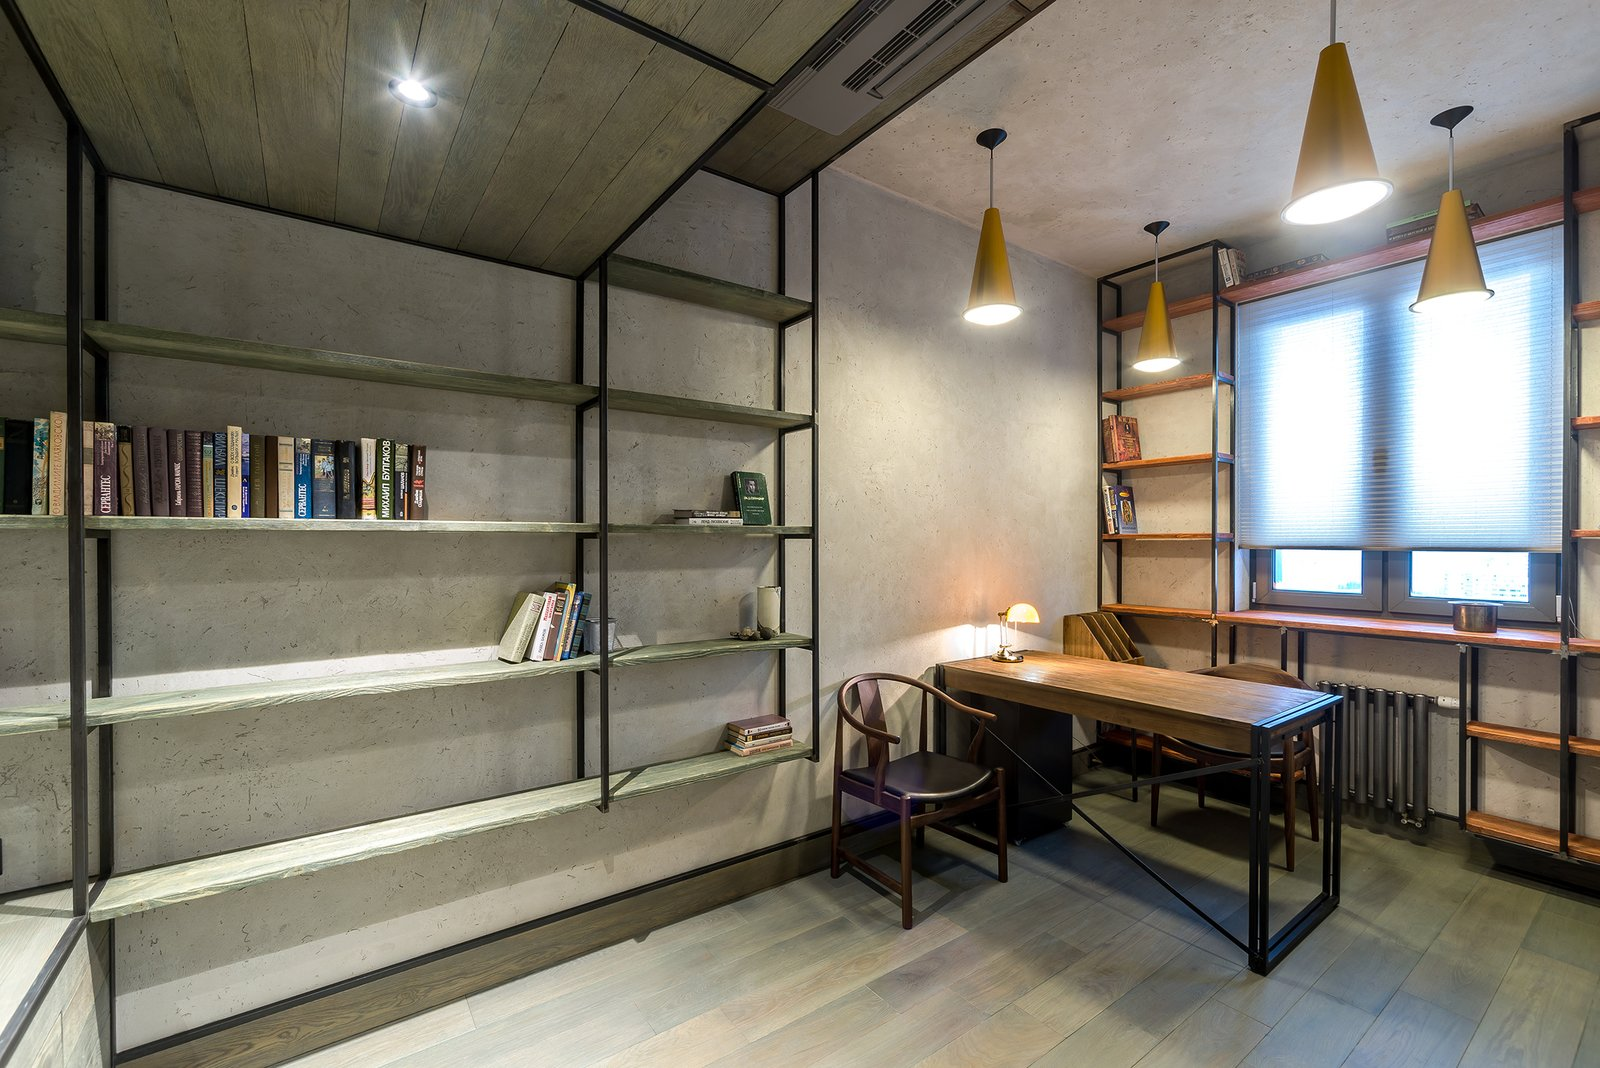 Office, Study, Library, Bookcase, Chair, Lamps, Storage, Shelves, Desk, and Medium Hardwood Office  Best Office Medium Hardwood Storage Photos from INTERIOR IN THE INDUSTRIAL CONSTRUCTION HOUSE